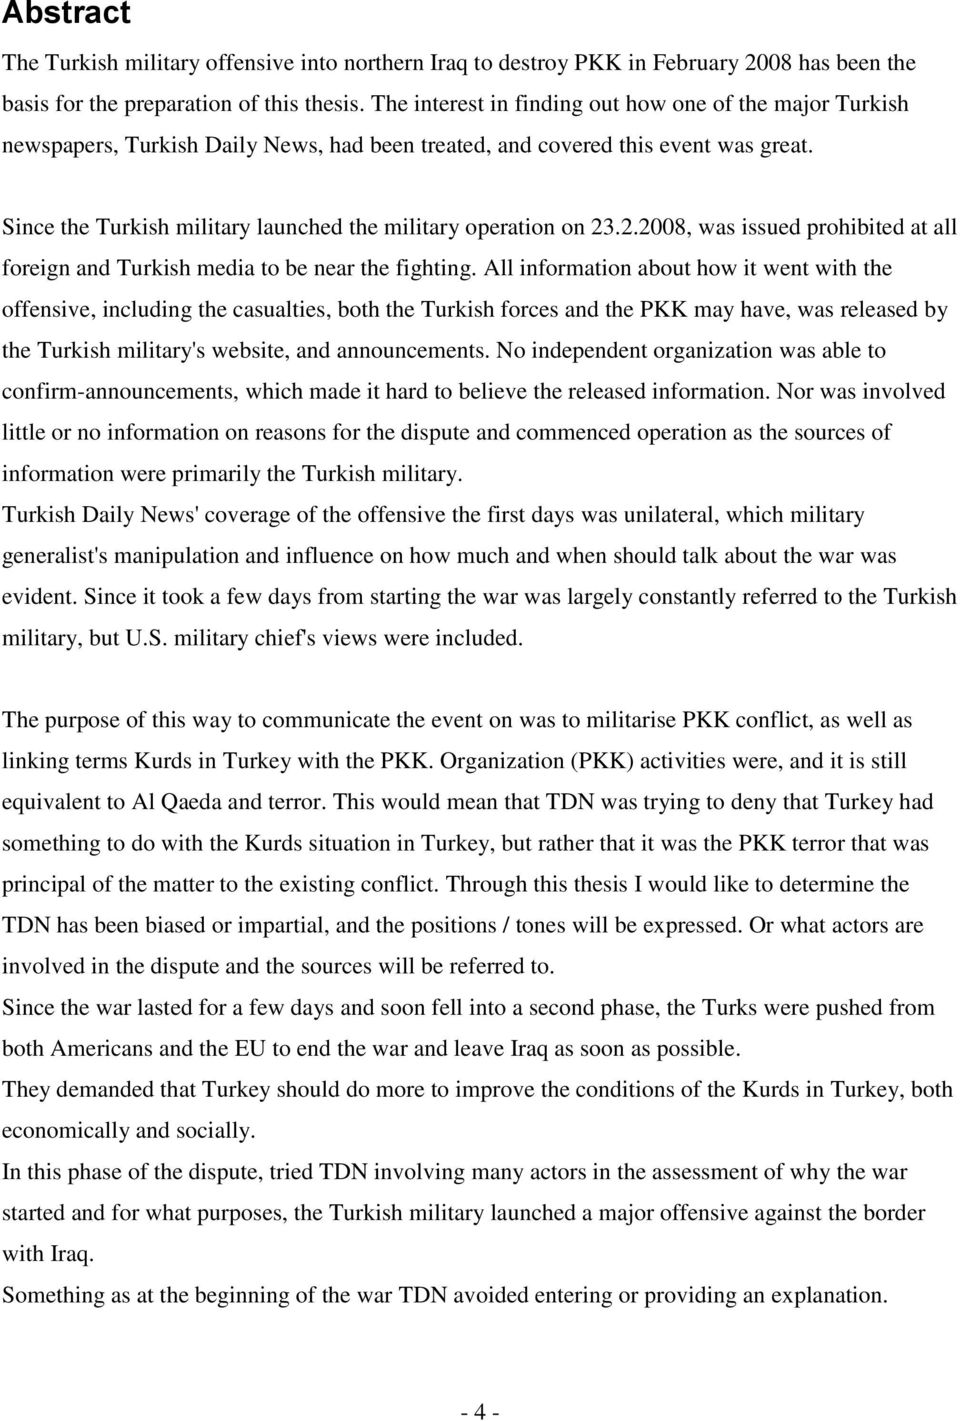 Since the Turkish military launched the military operation on 23.2.2008, was issued prohibited at all foreign and Turkish media to be near the fighting.